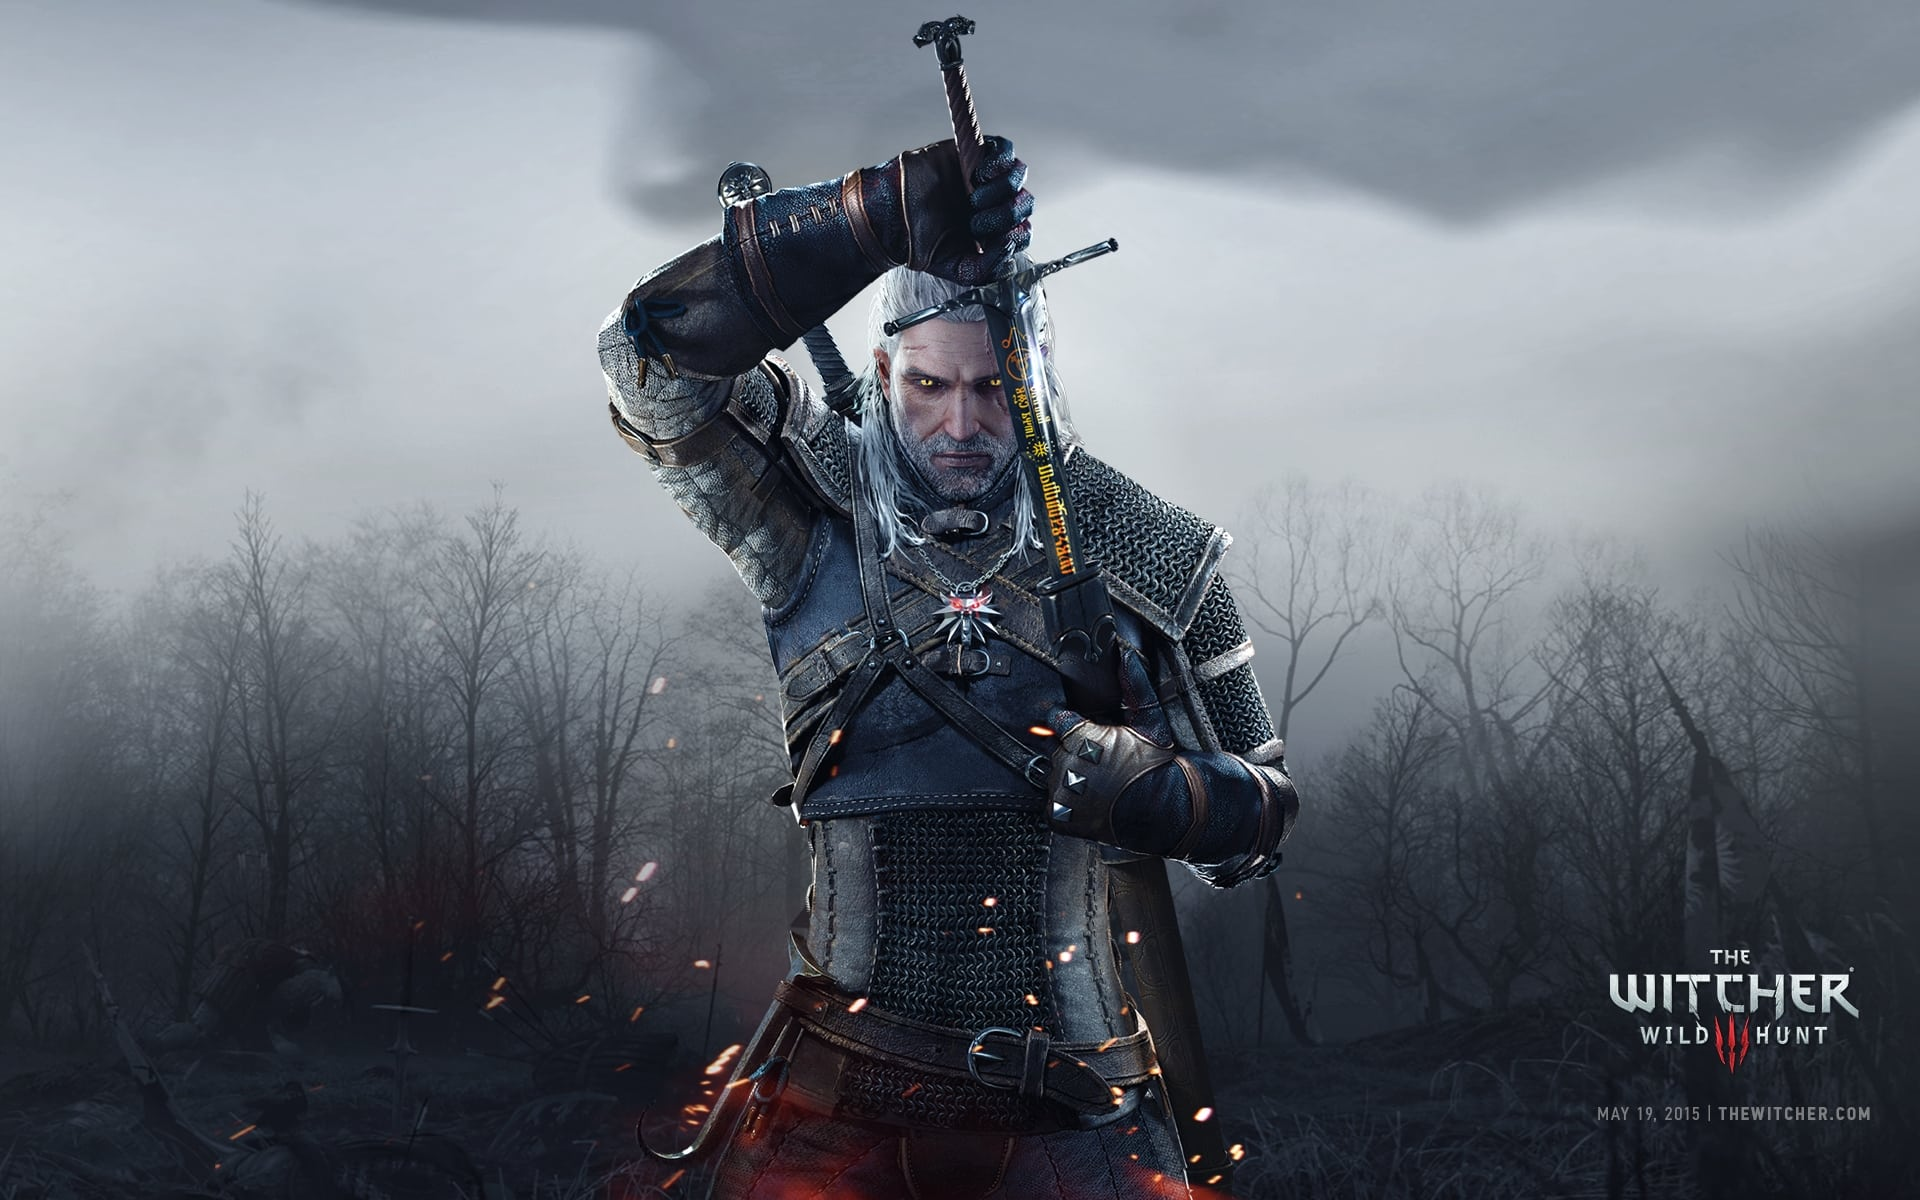 BA (Hons) Acting Course Leader stars in The Witcher 3: Wild Hunt